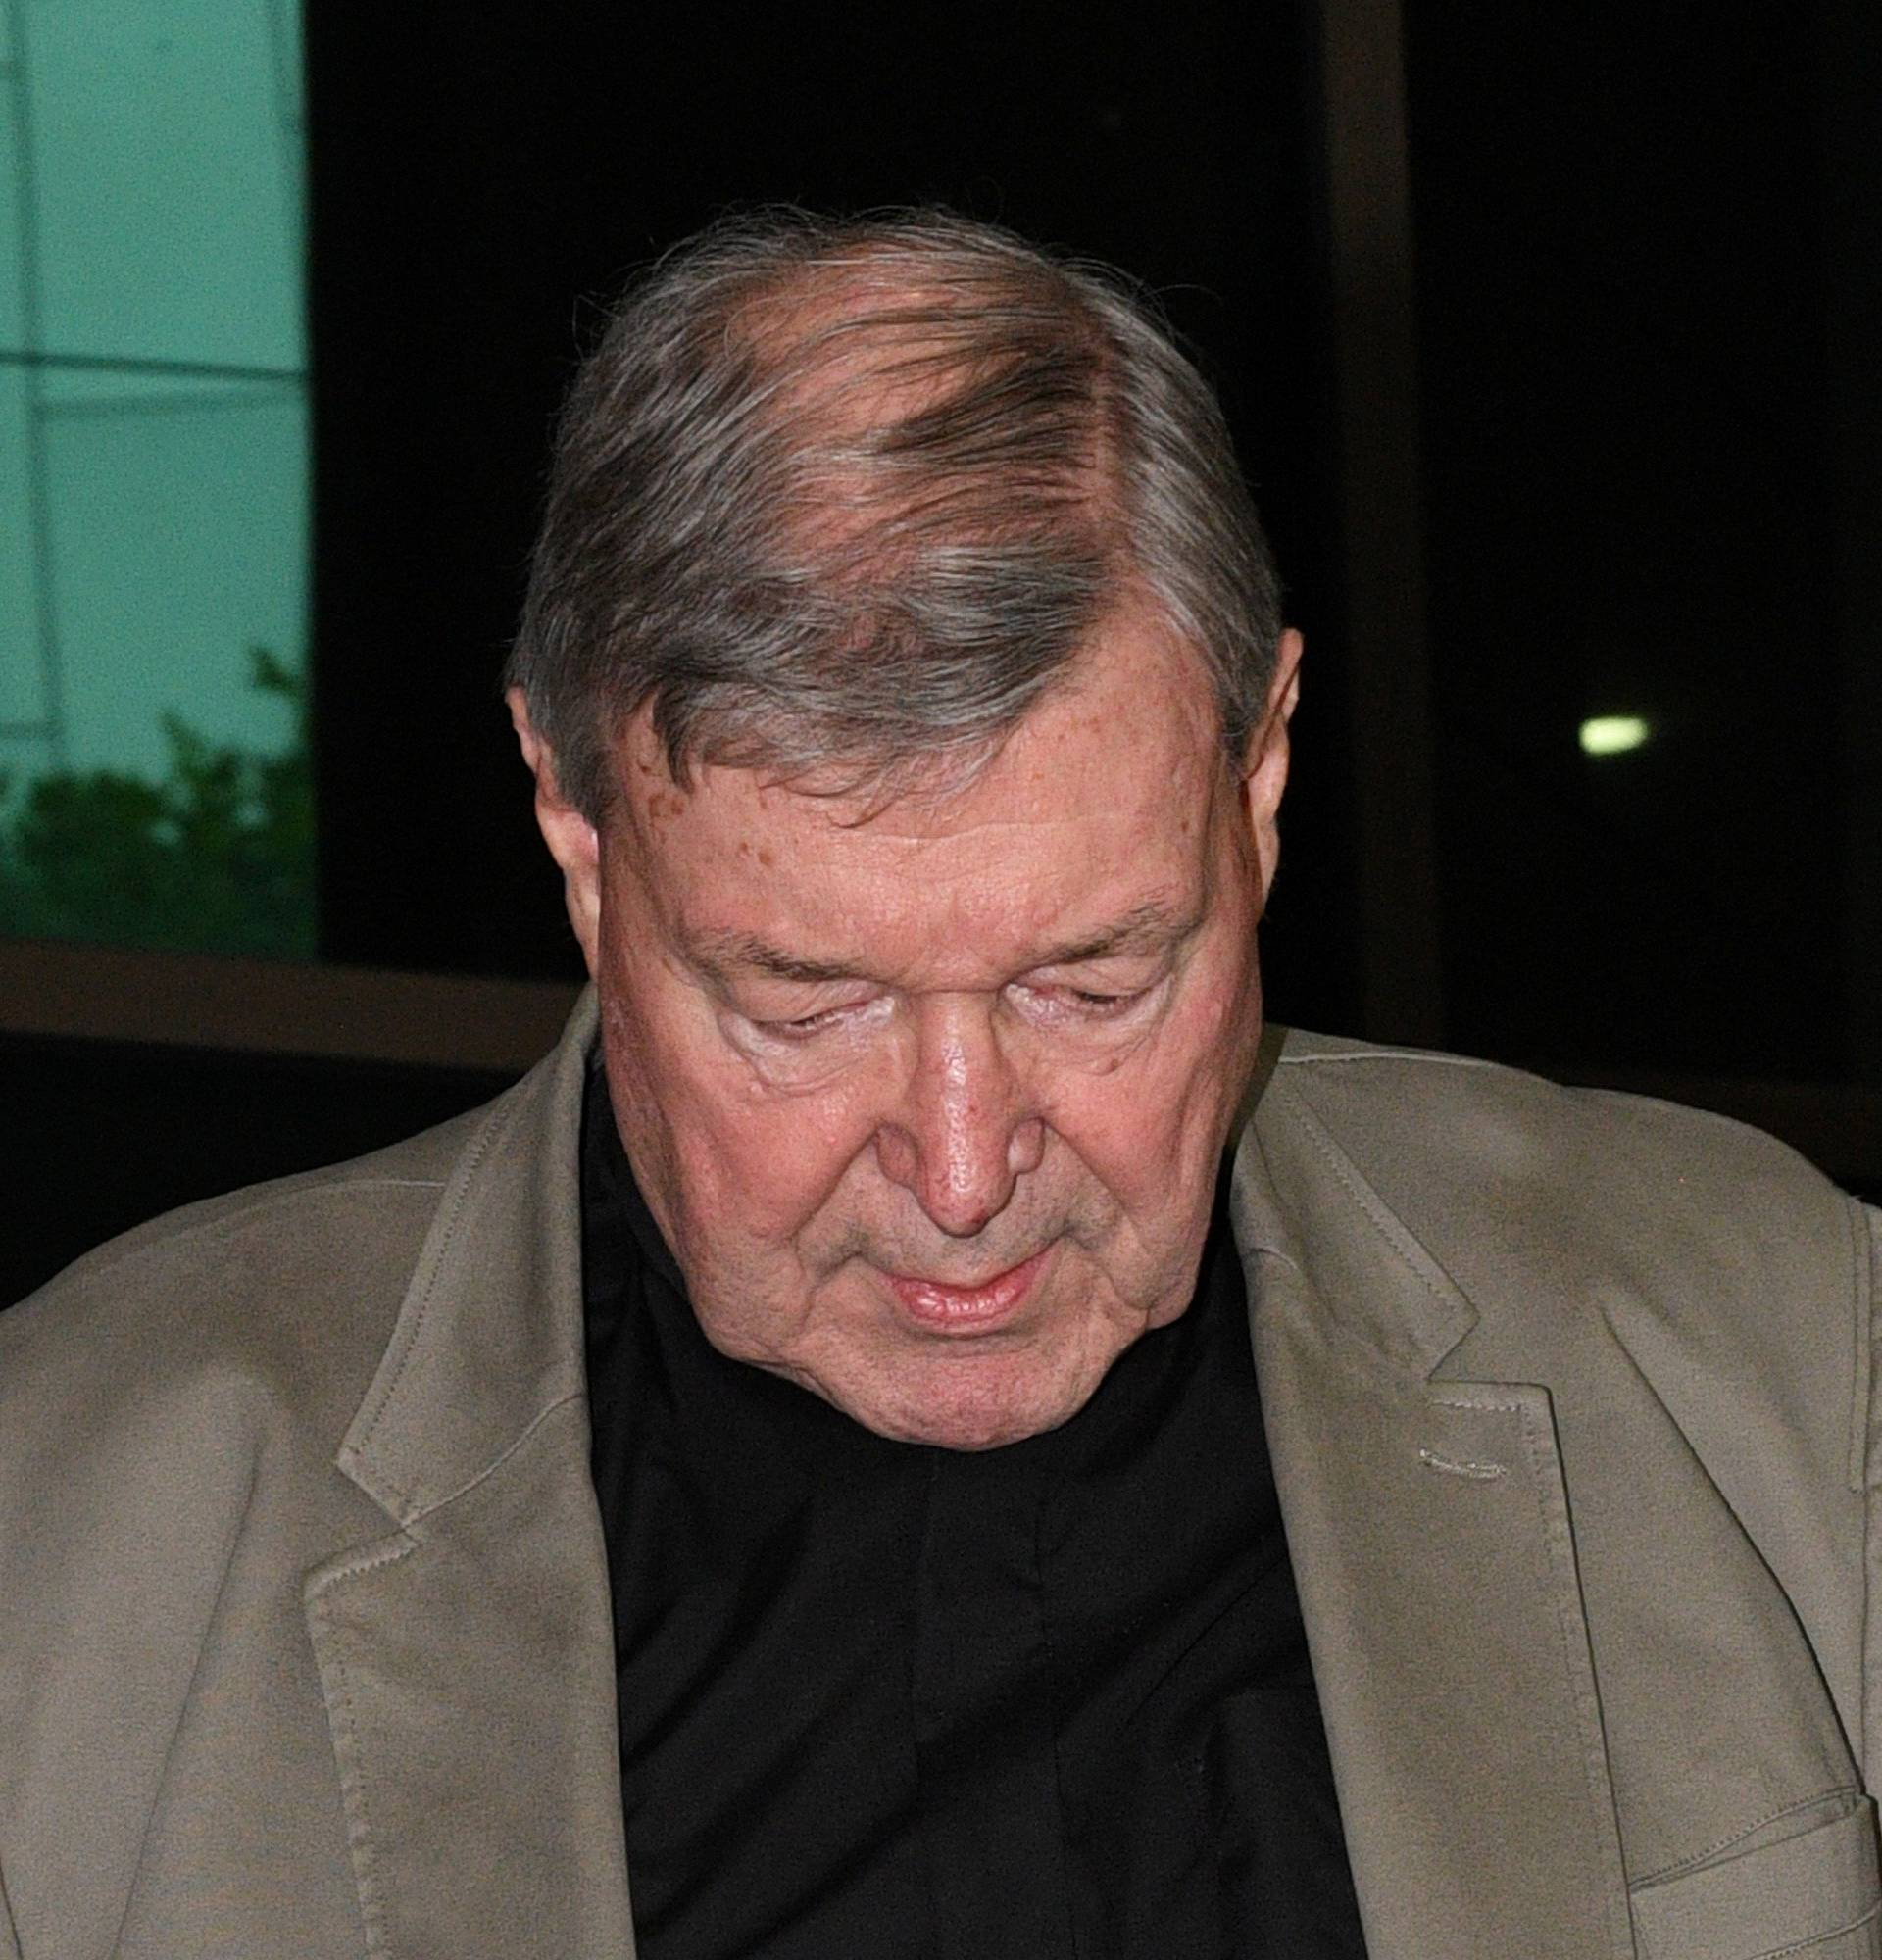 Cardinal George Pell departs the Melbourne Magistrates Court in Melbourne